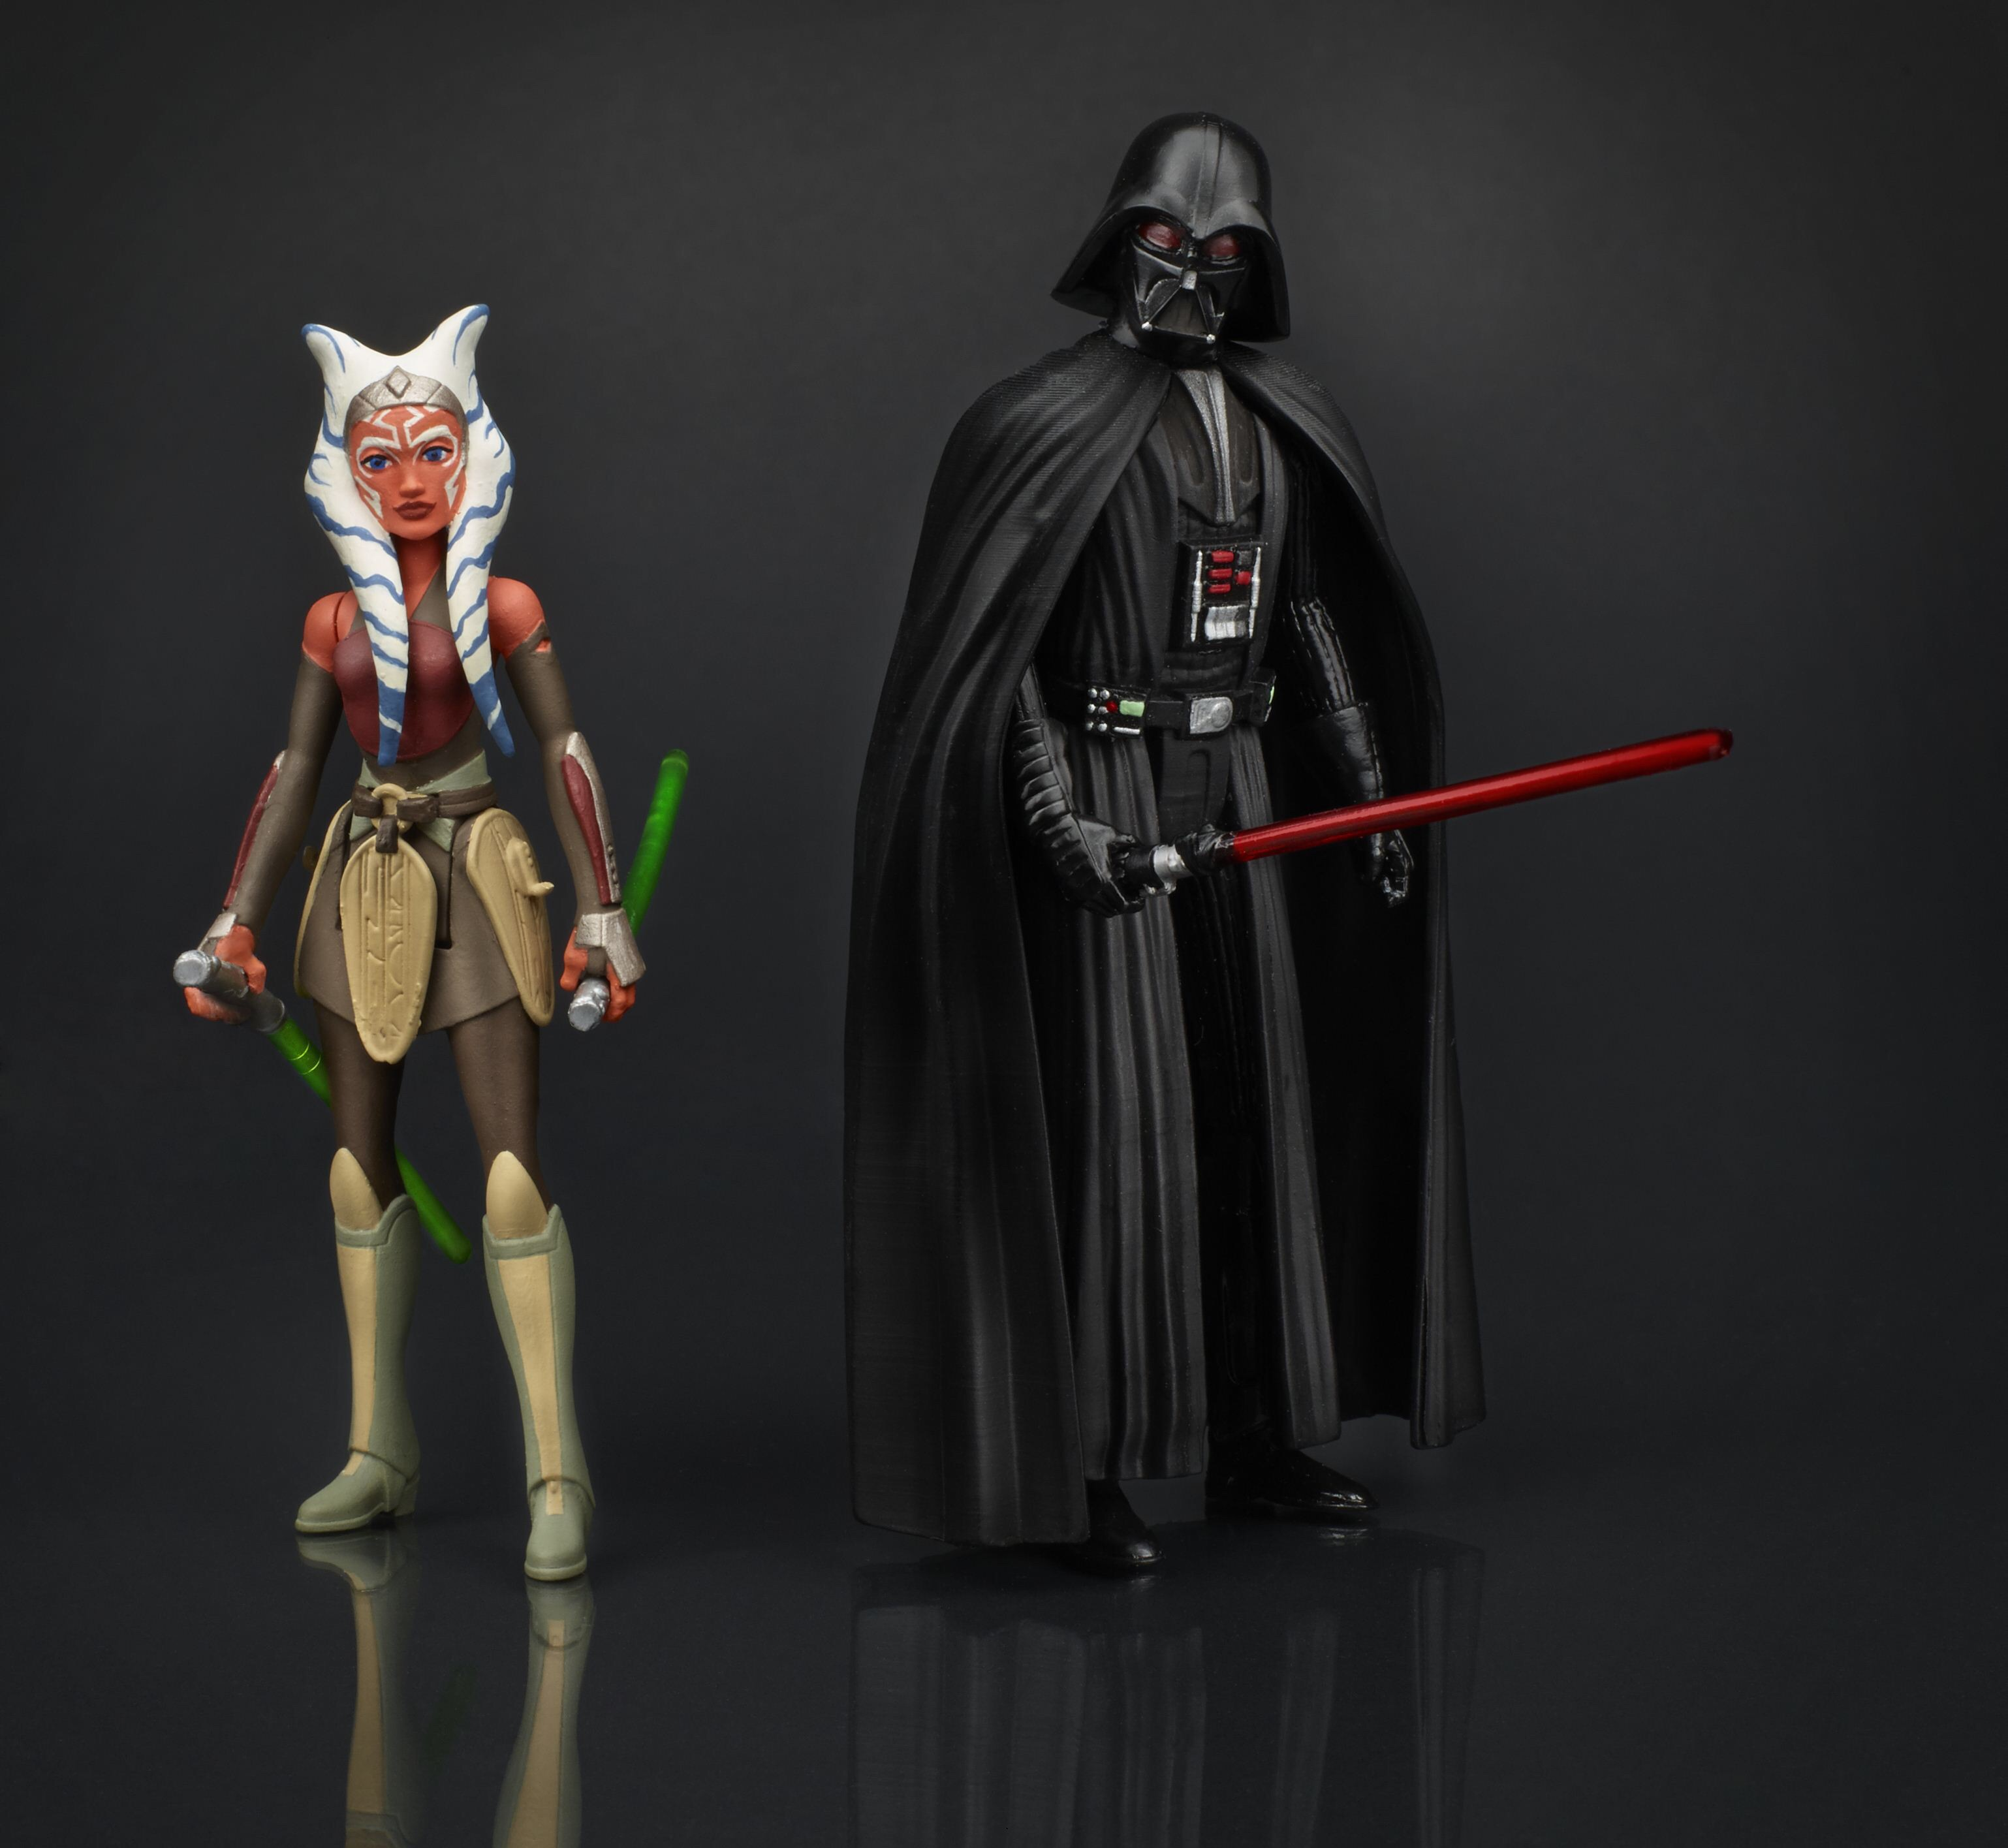 New Star Wars Rebels Figures Coming In April